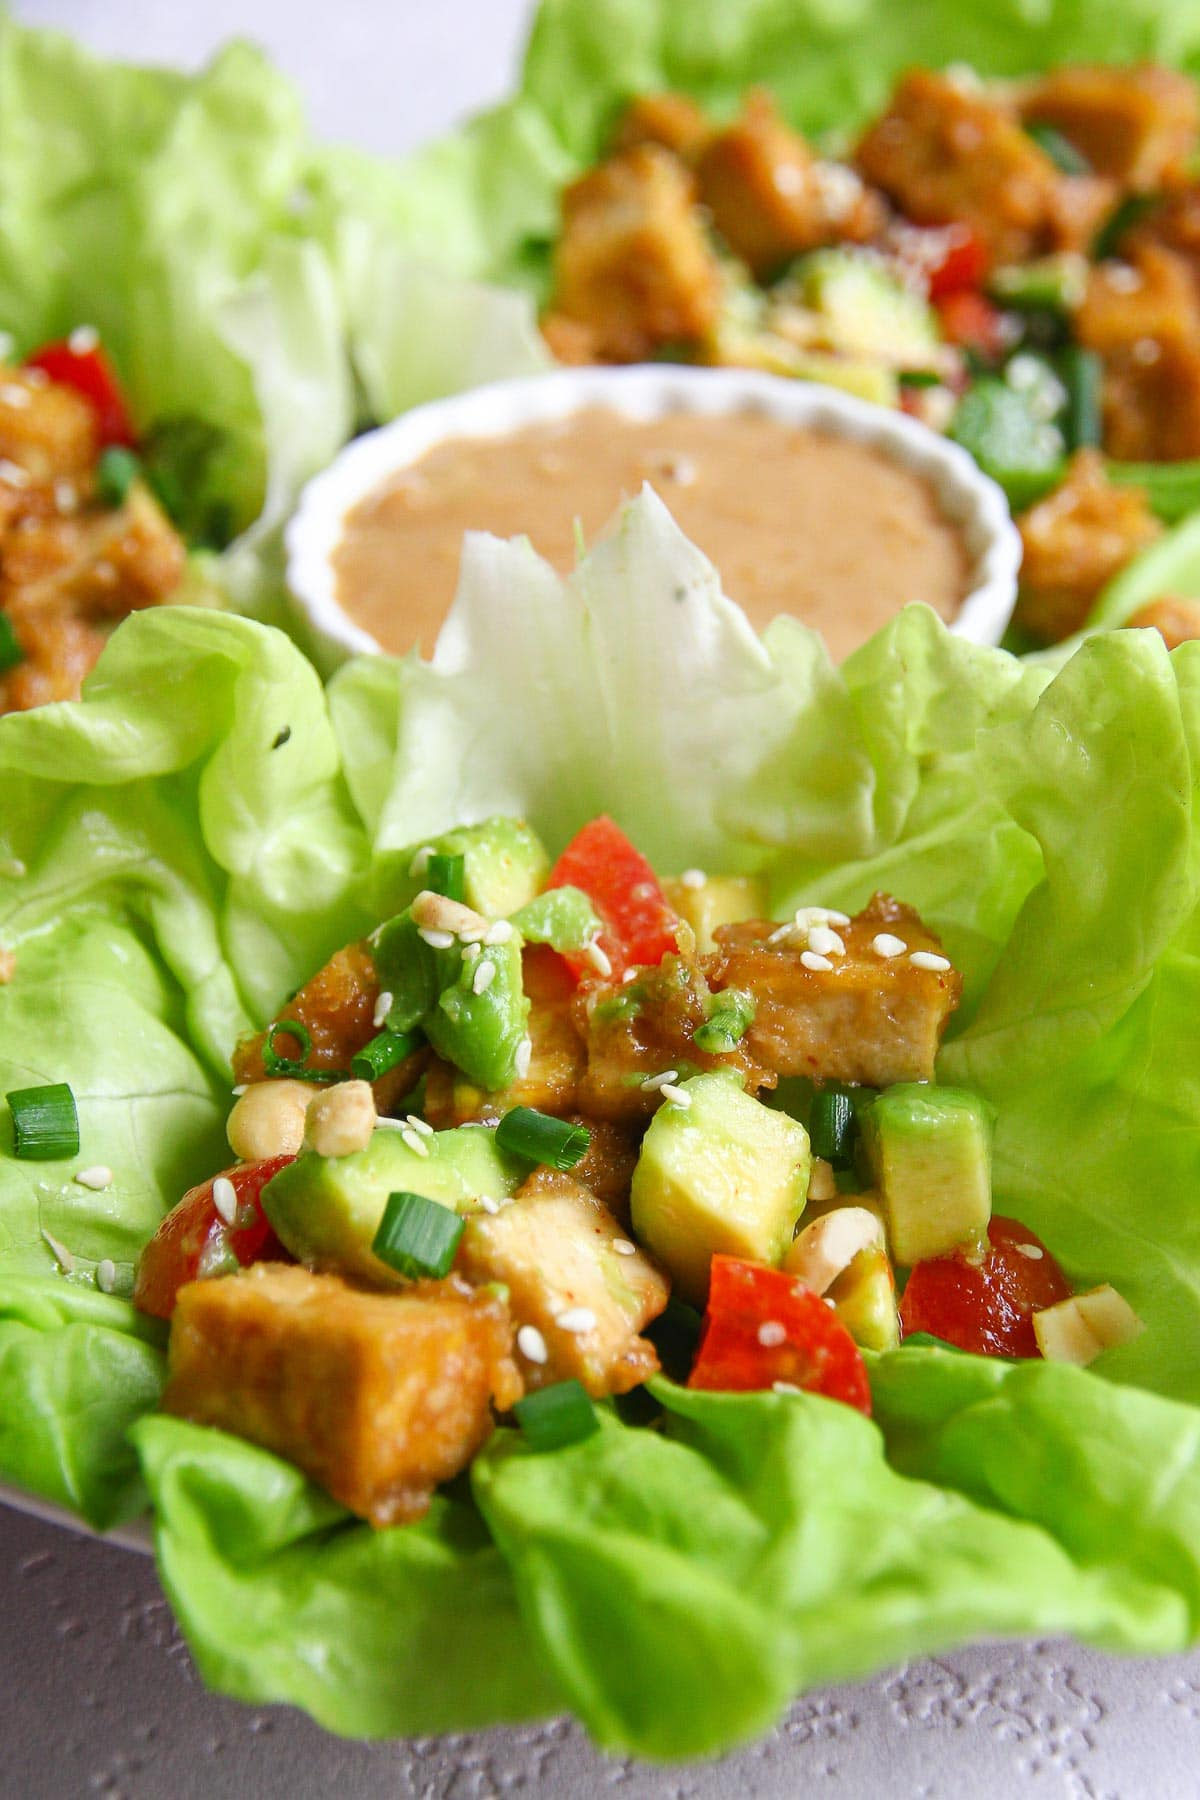 Delicious keto and vegetarian tofu lettuce wraps recipe with a peanut ginger sauce.